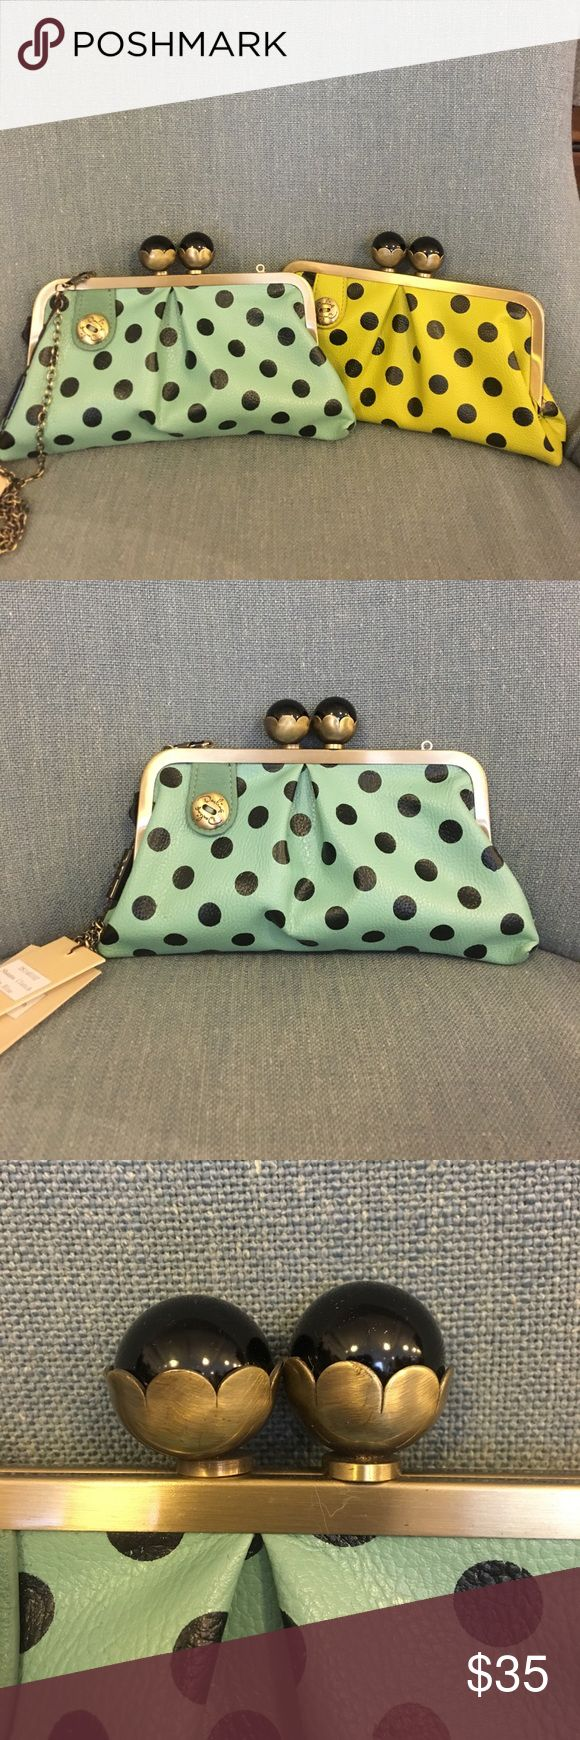 Polka dot clutch bags Polka dot clutch bags with a strap. 2 available. One in blue one in green Bags Mini Bags